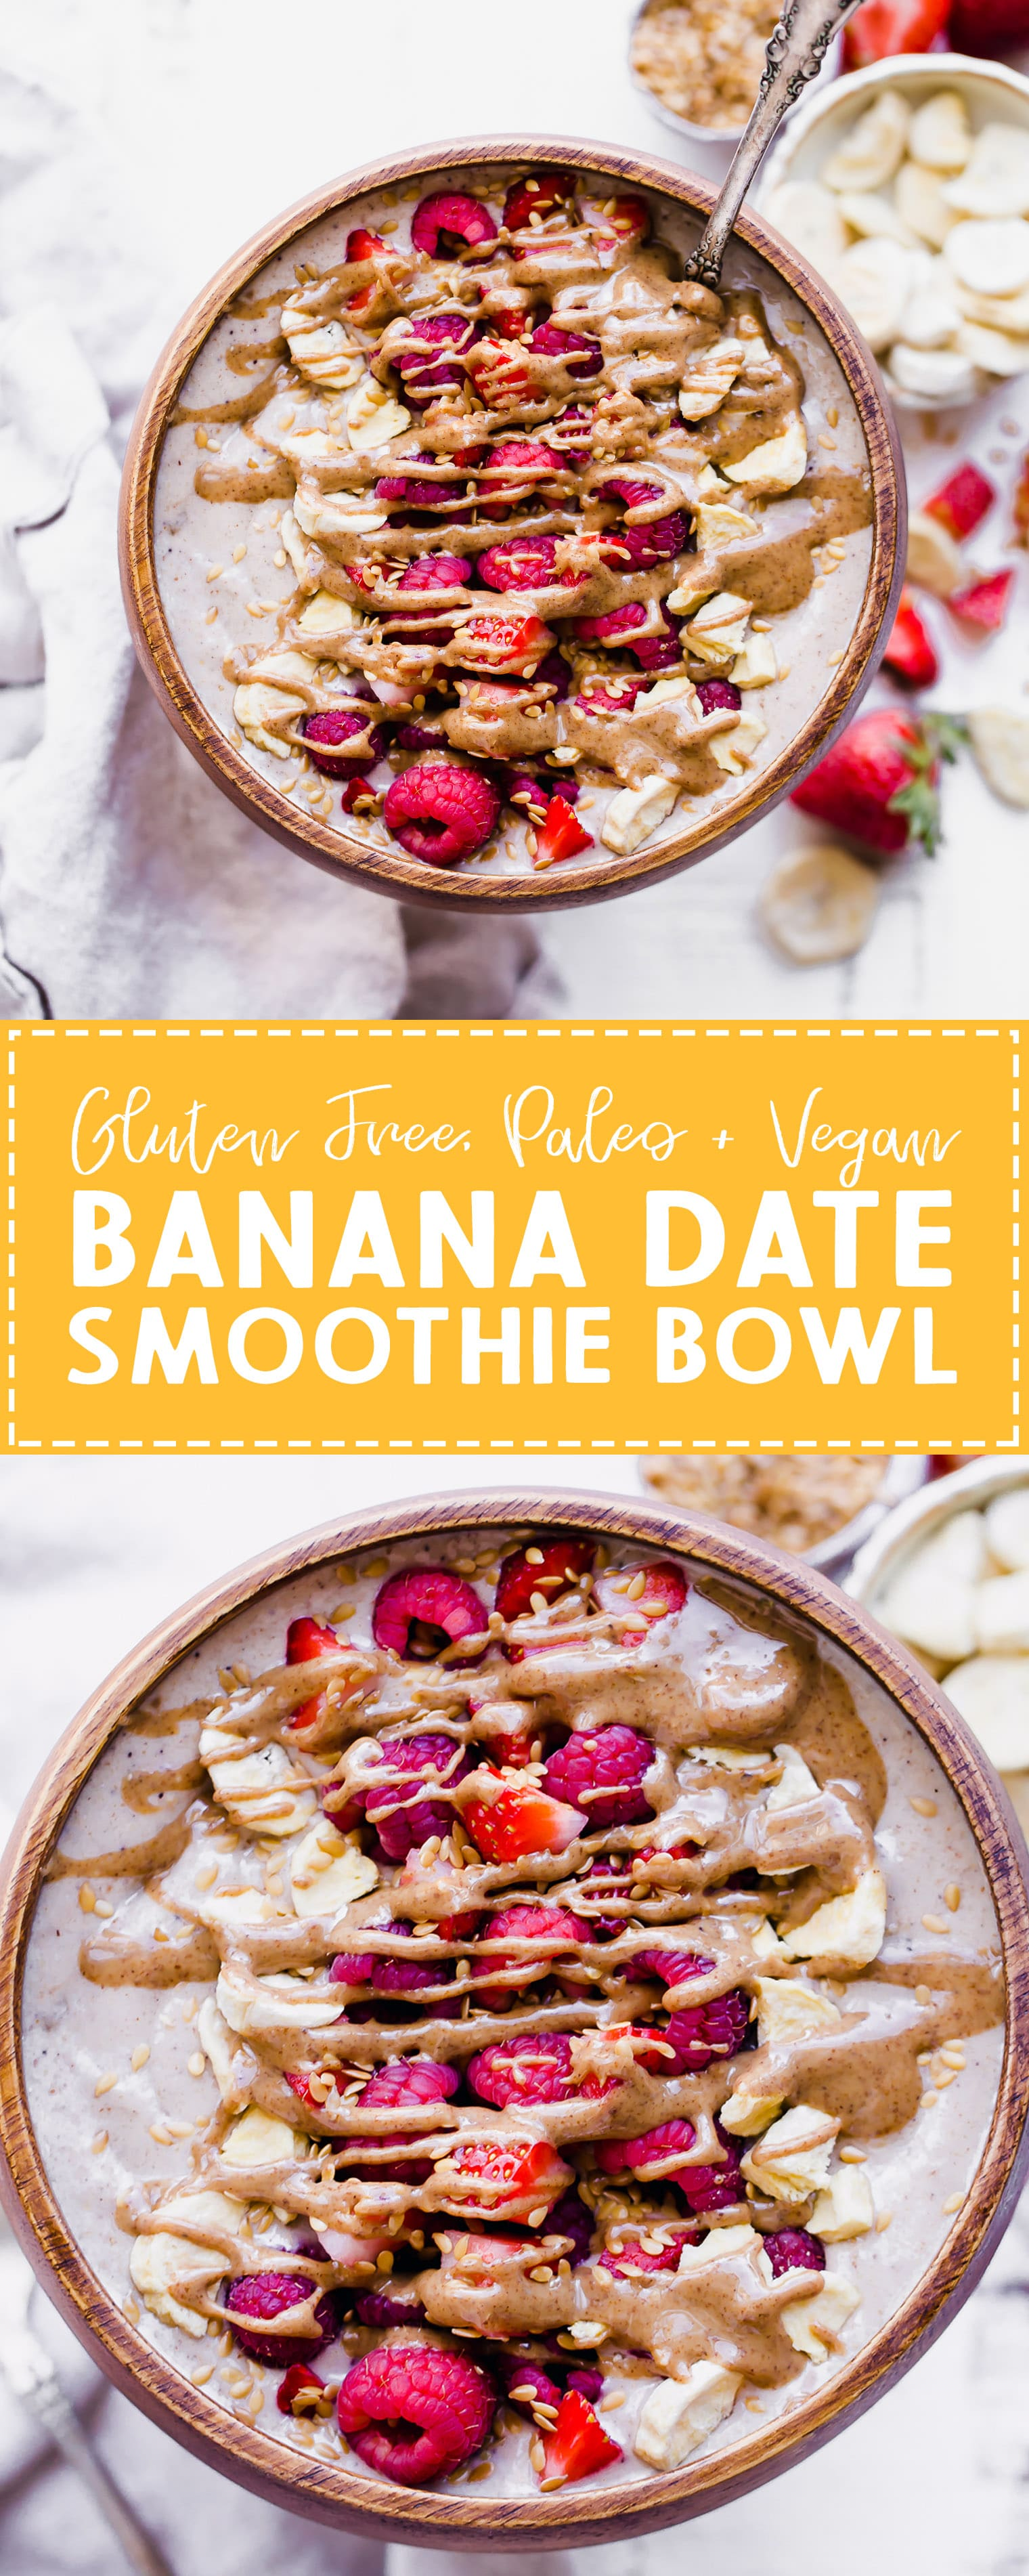 This Banana Date Smoothie Bowl (or smoothie) is a creamy and sweet treat that tastes like ice cream but is simple and healthy enough for breakfast thanks to a secret veggie that's snuck in there. Make yourself a bowl of this paleo and vegan banana date goodness on the next warm morning for a refreshing breakfast.